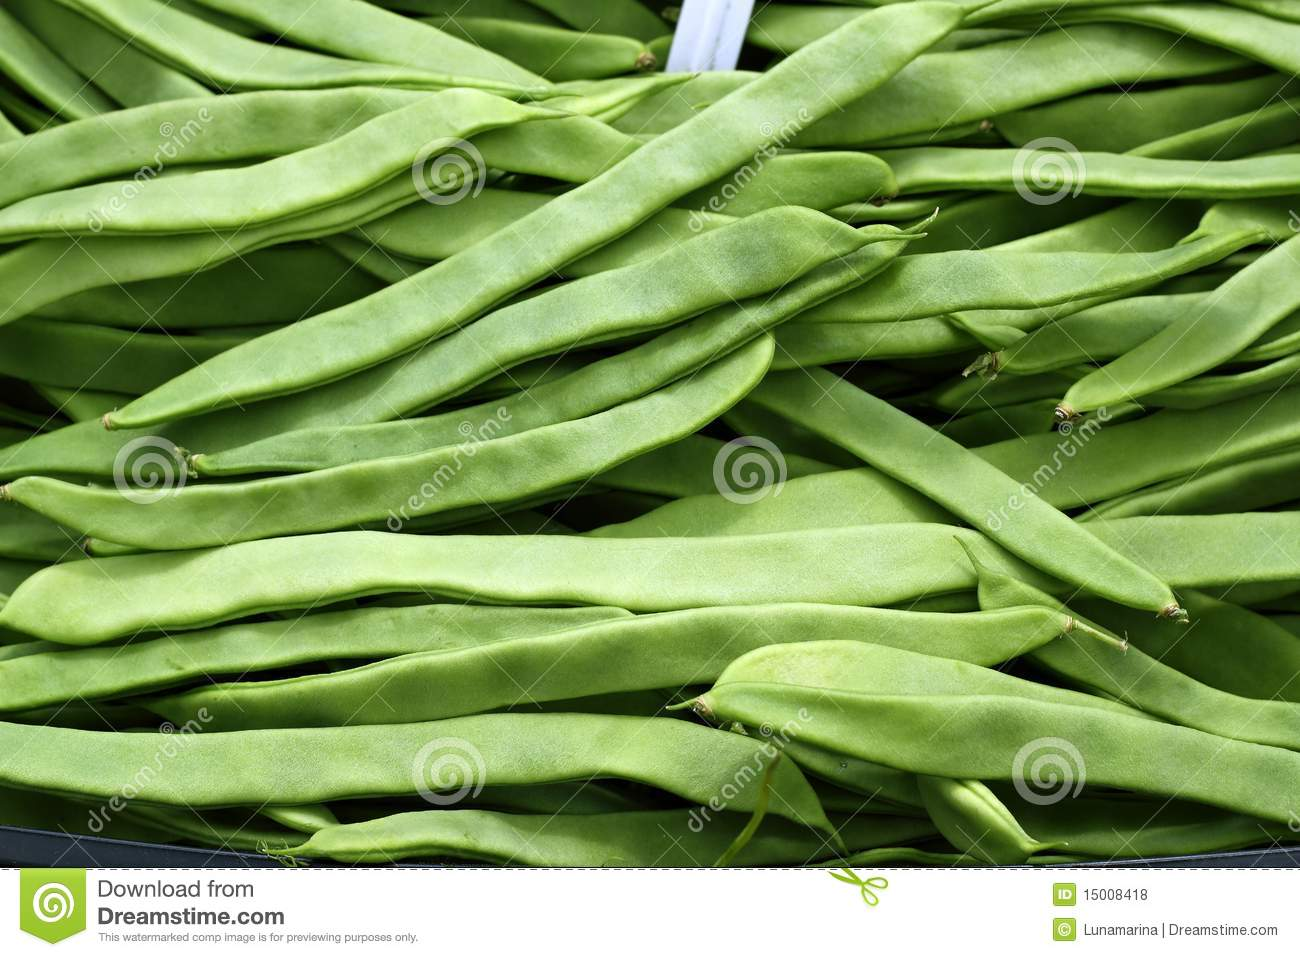 Green Beans Vegetable Texture In Spain Market Royalty Free Stock ...